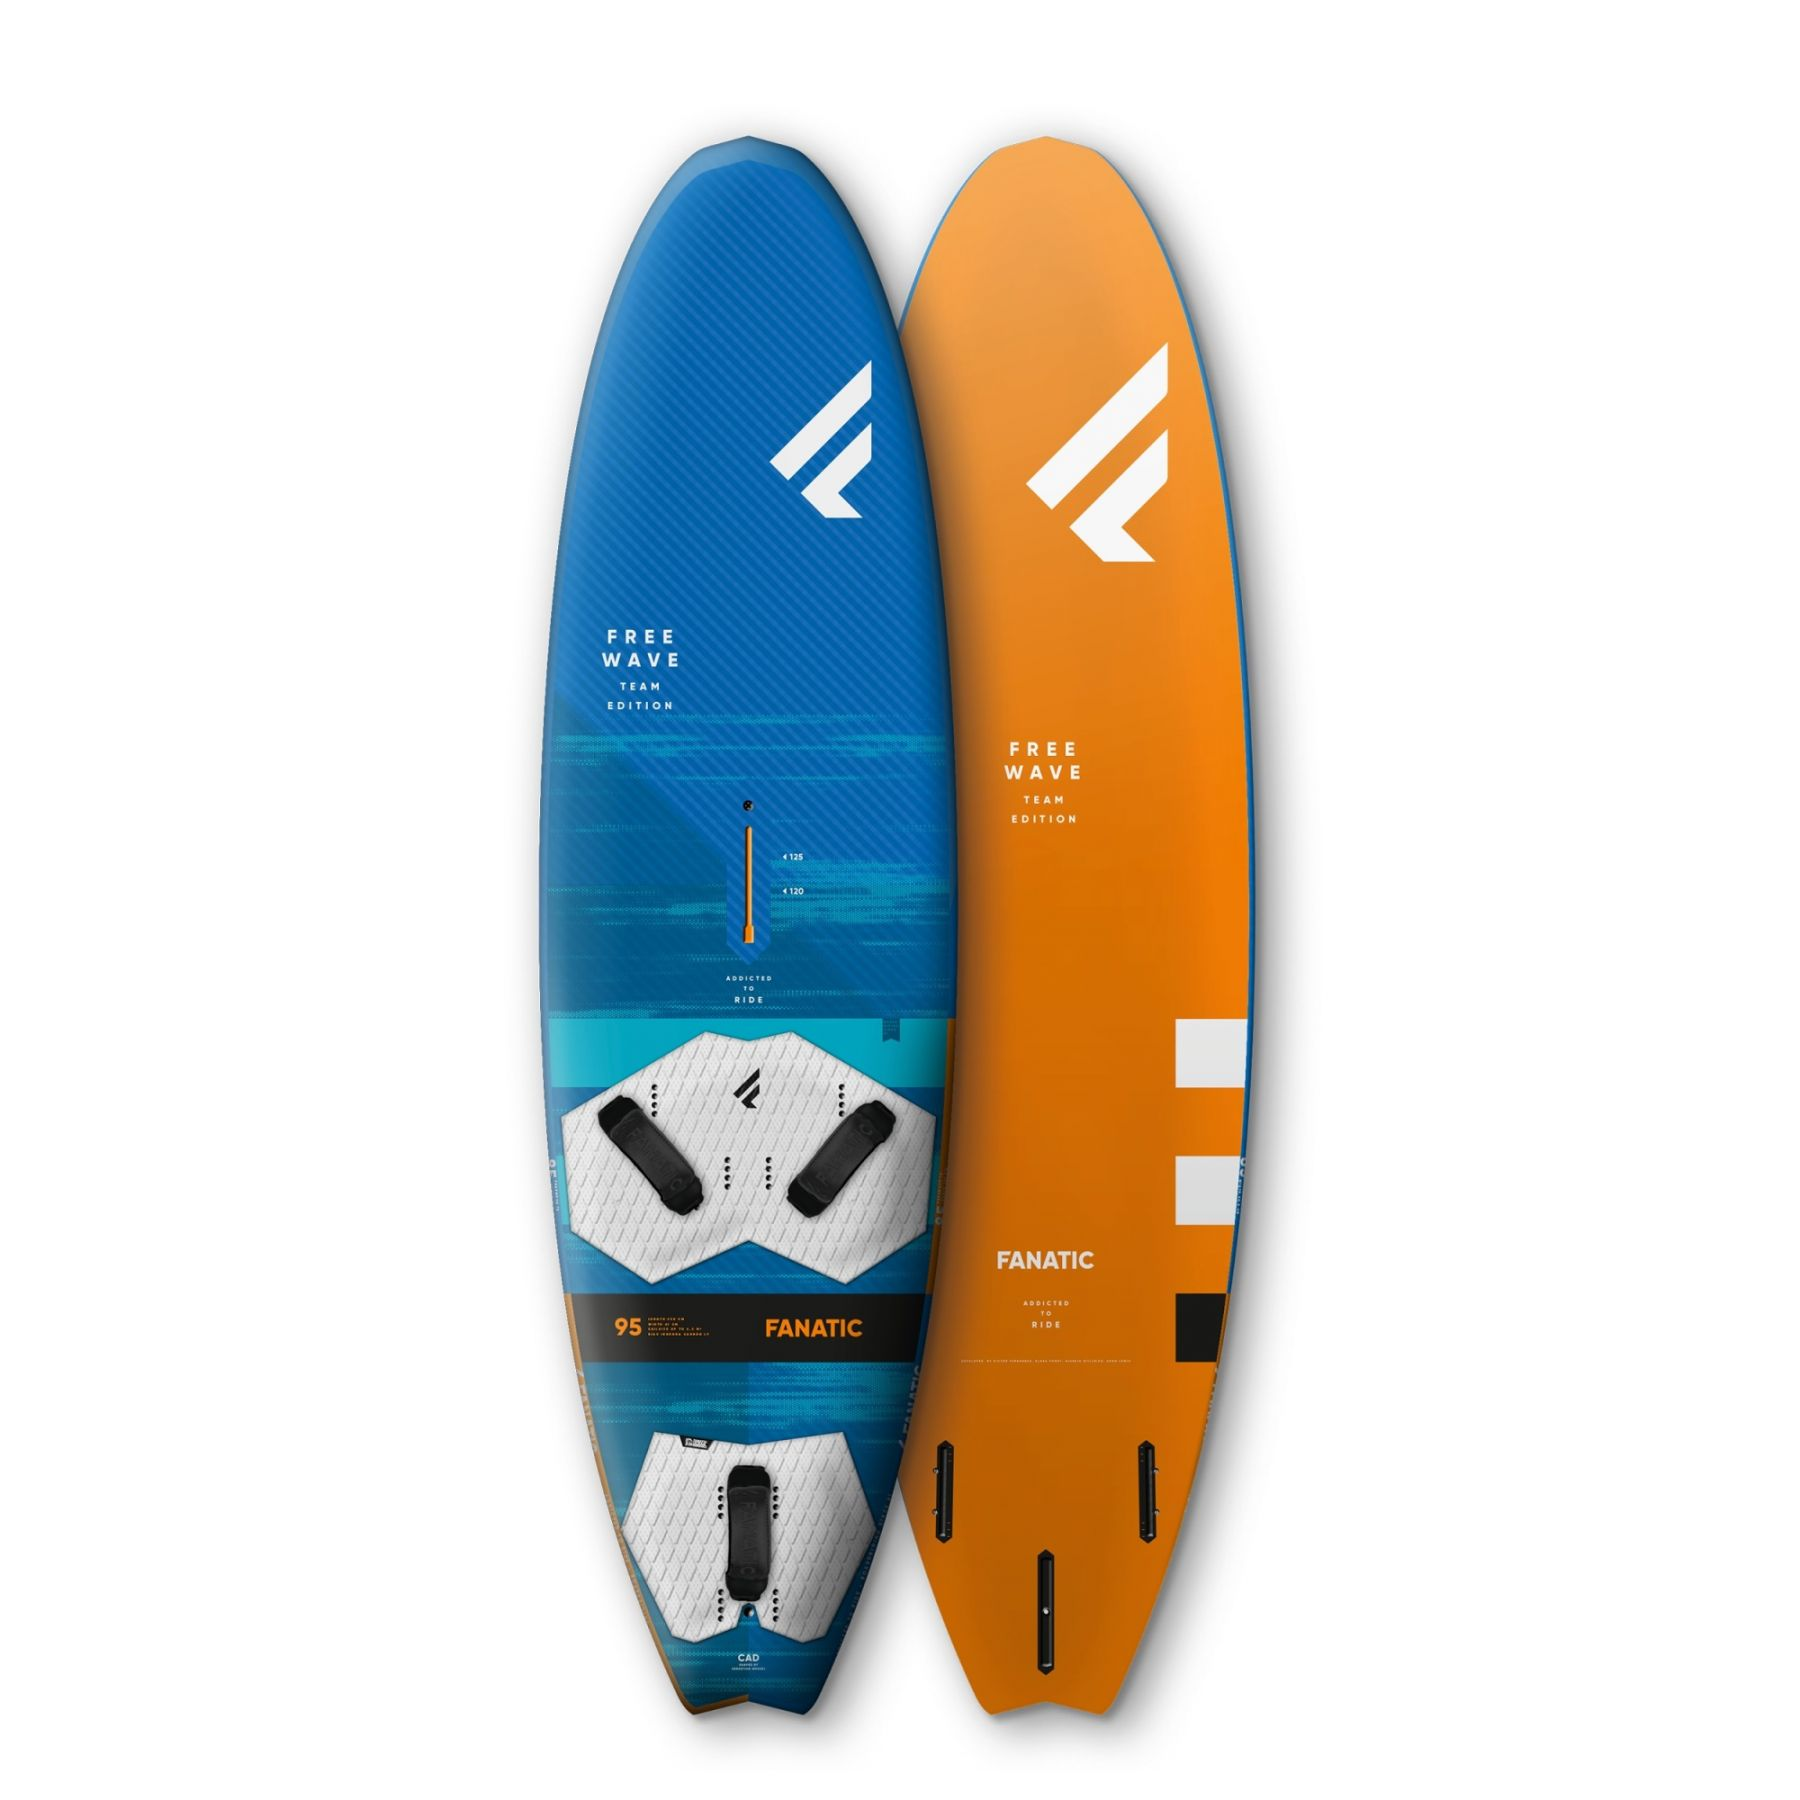 Tabla de windsurf Fanatic FreeWave T.E